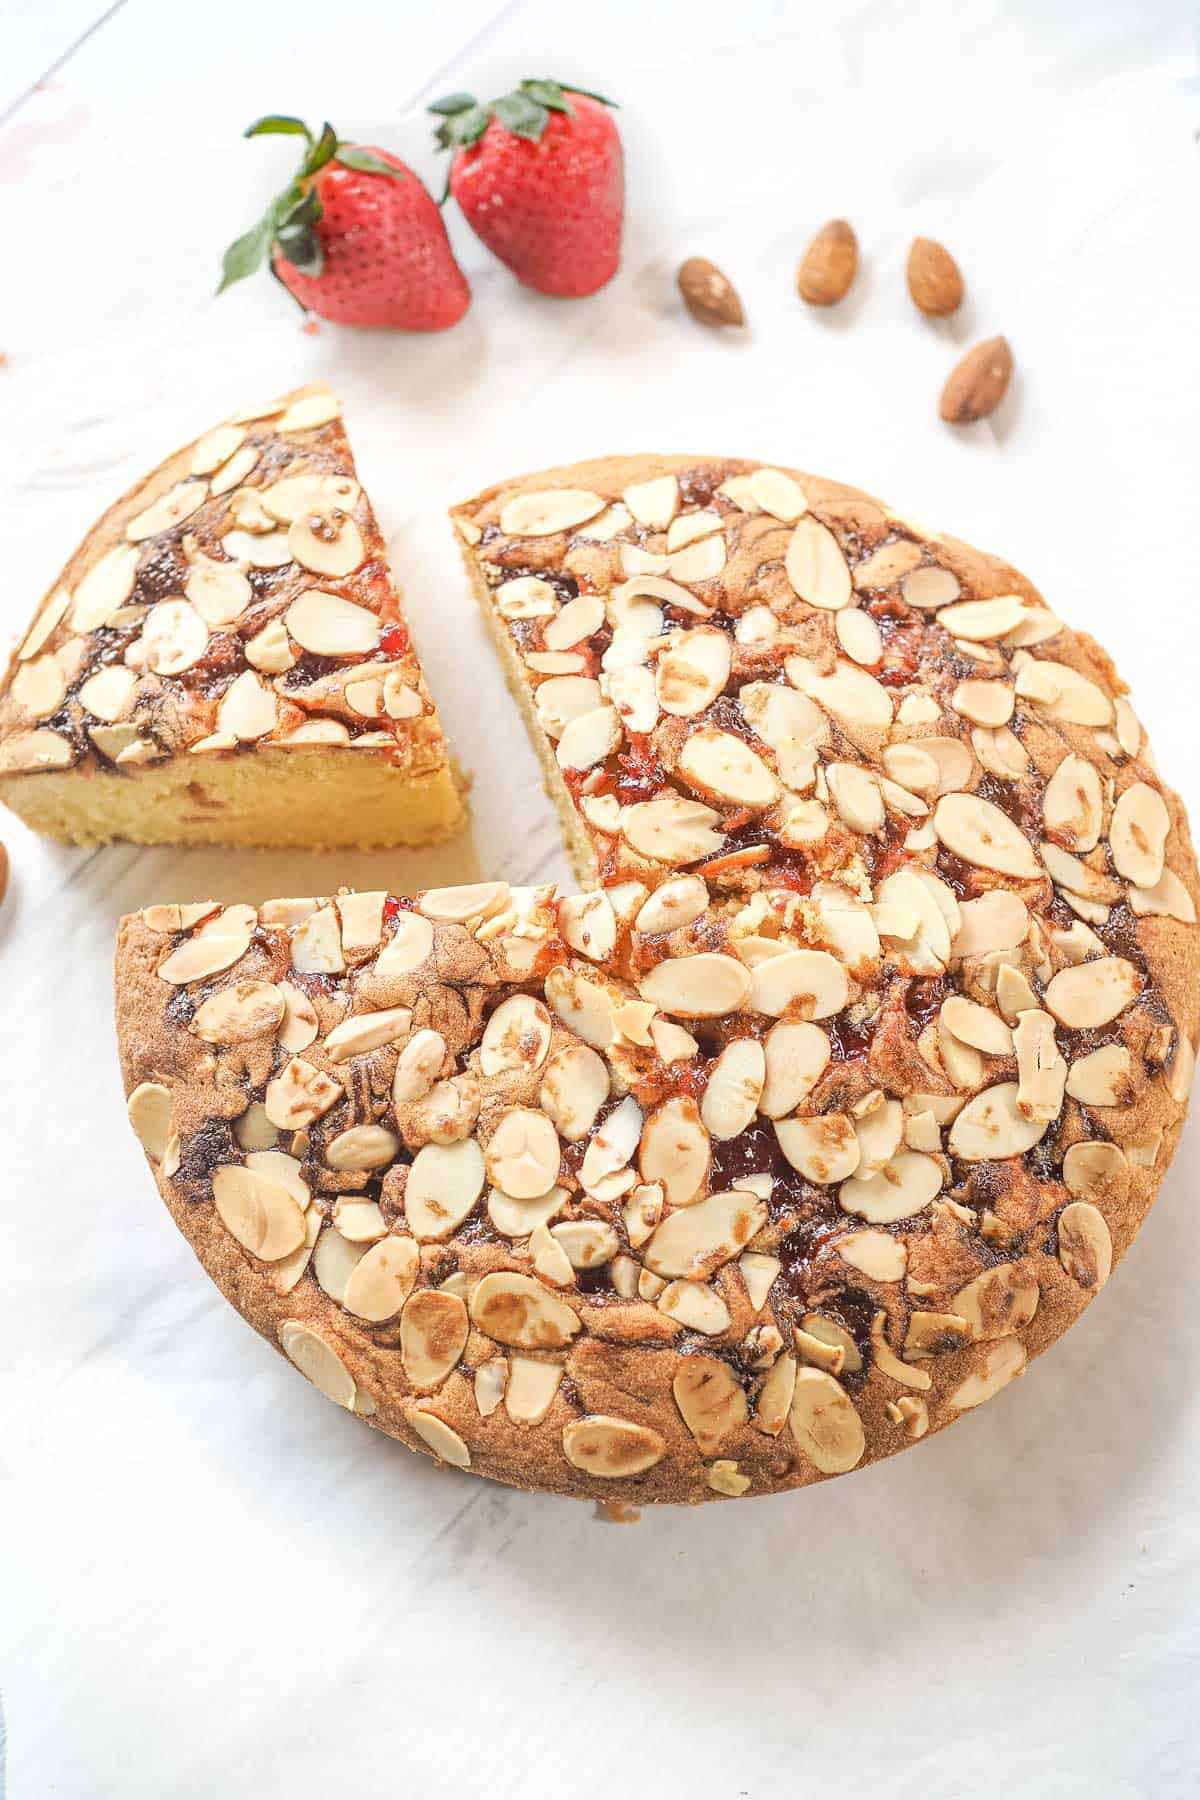 A round cake with strawberry filling and almond flakes topping. A slice of the cake is cut out